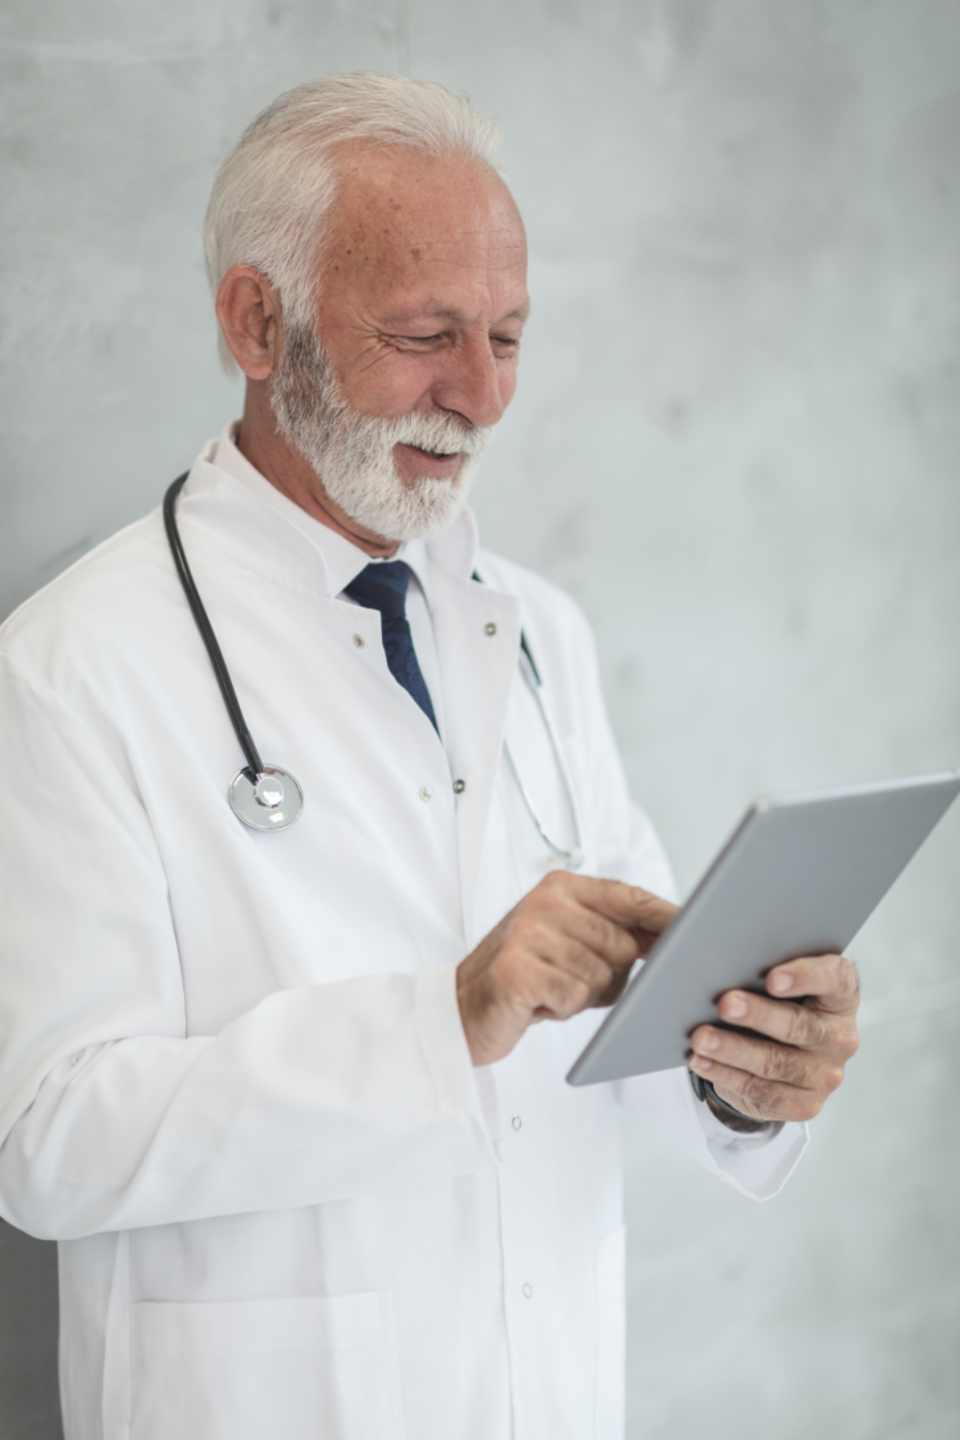 Free stock photo of male doctor